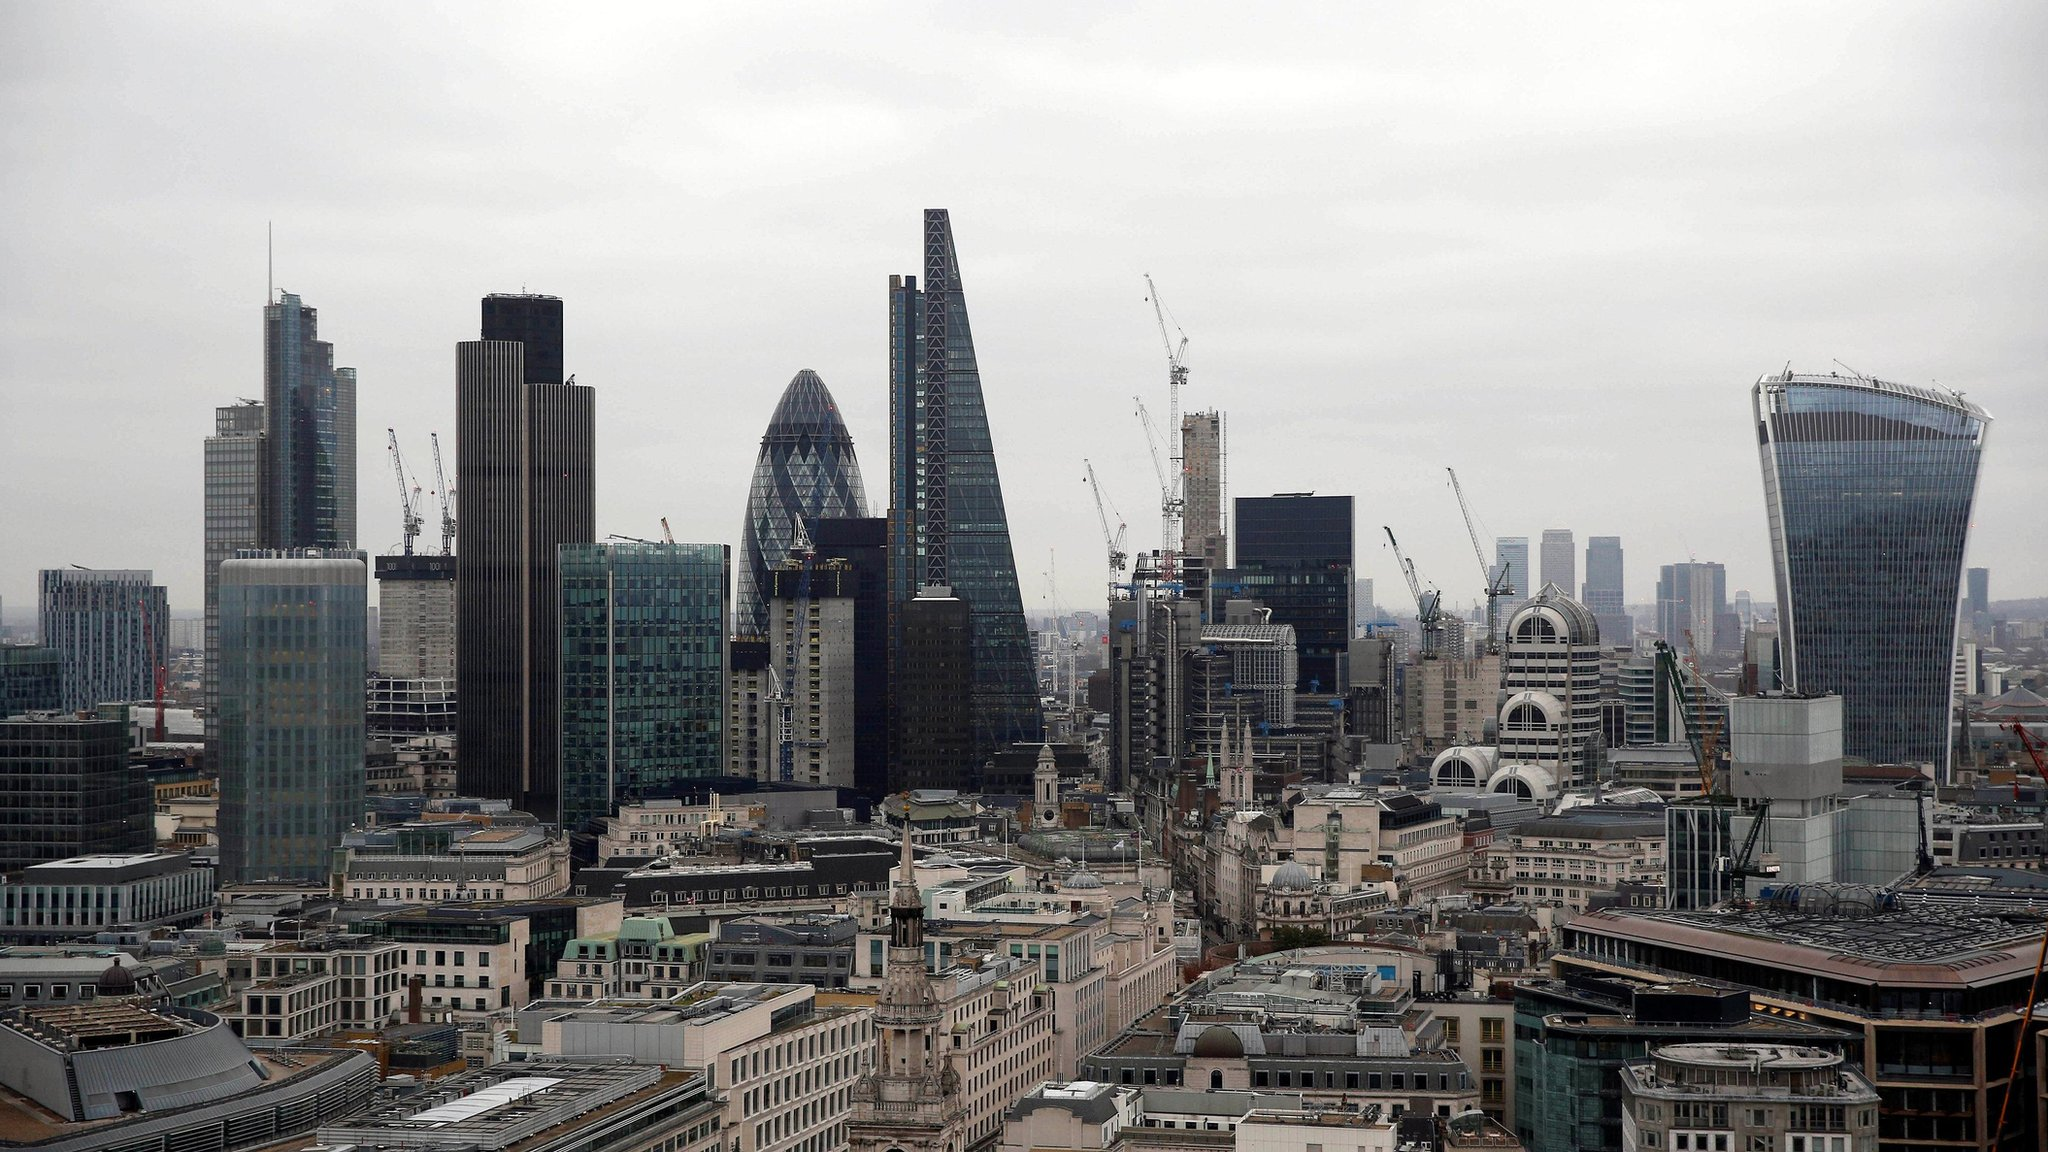 'Fire sale' risk with Bank capital approach, says Vickers